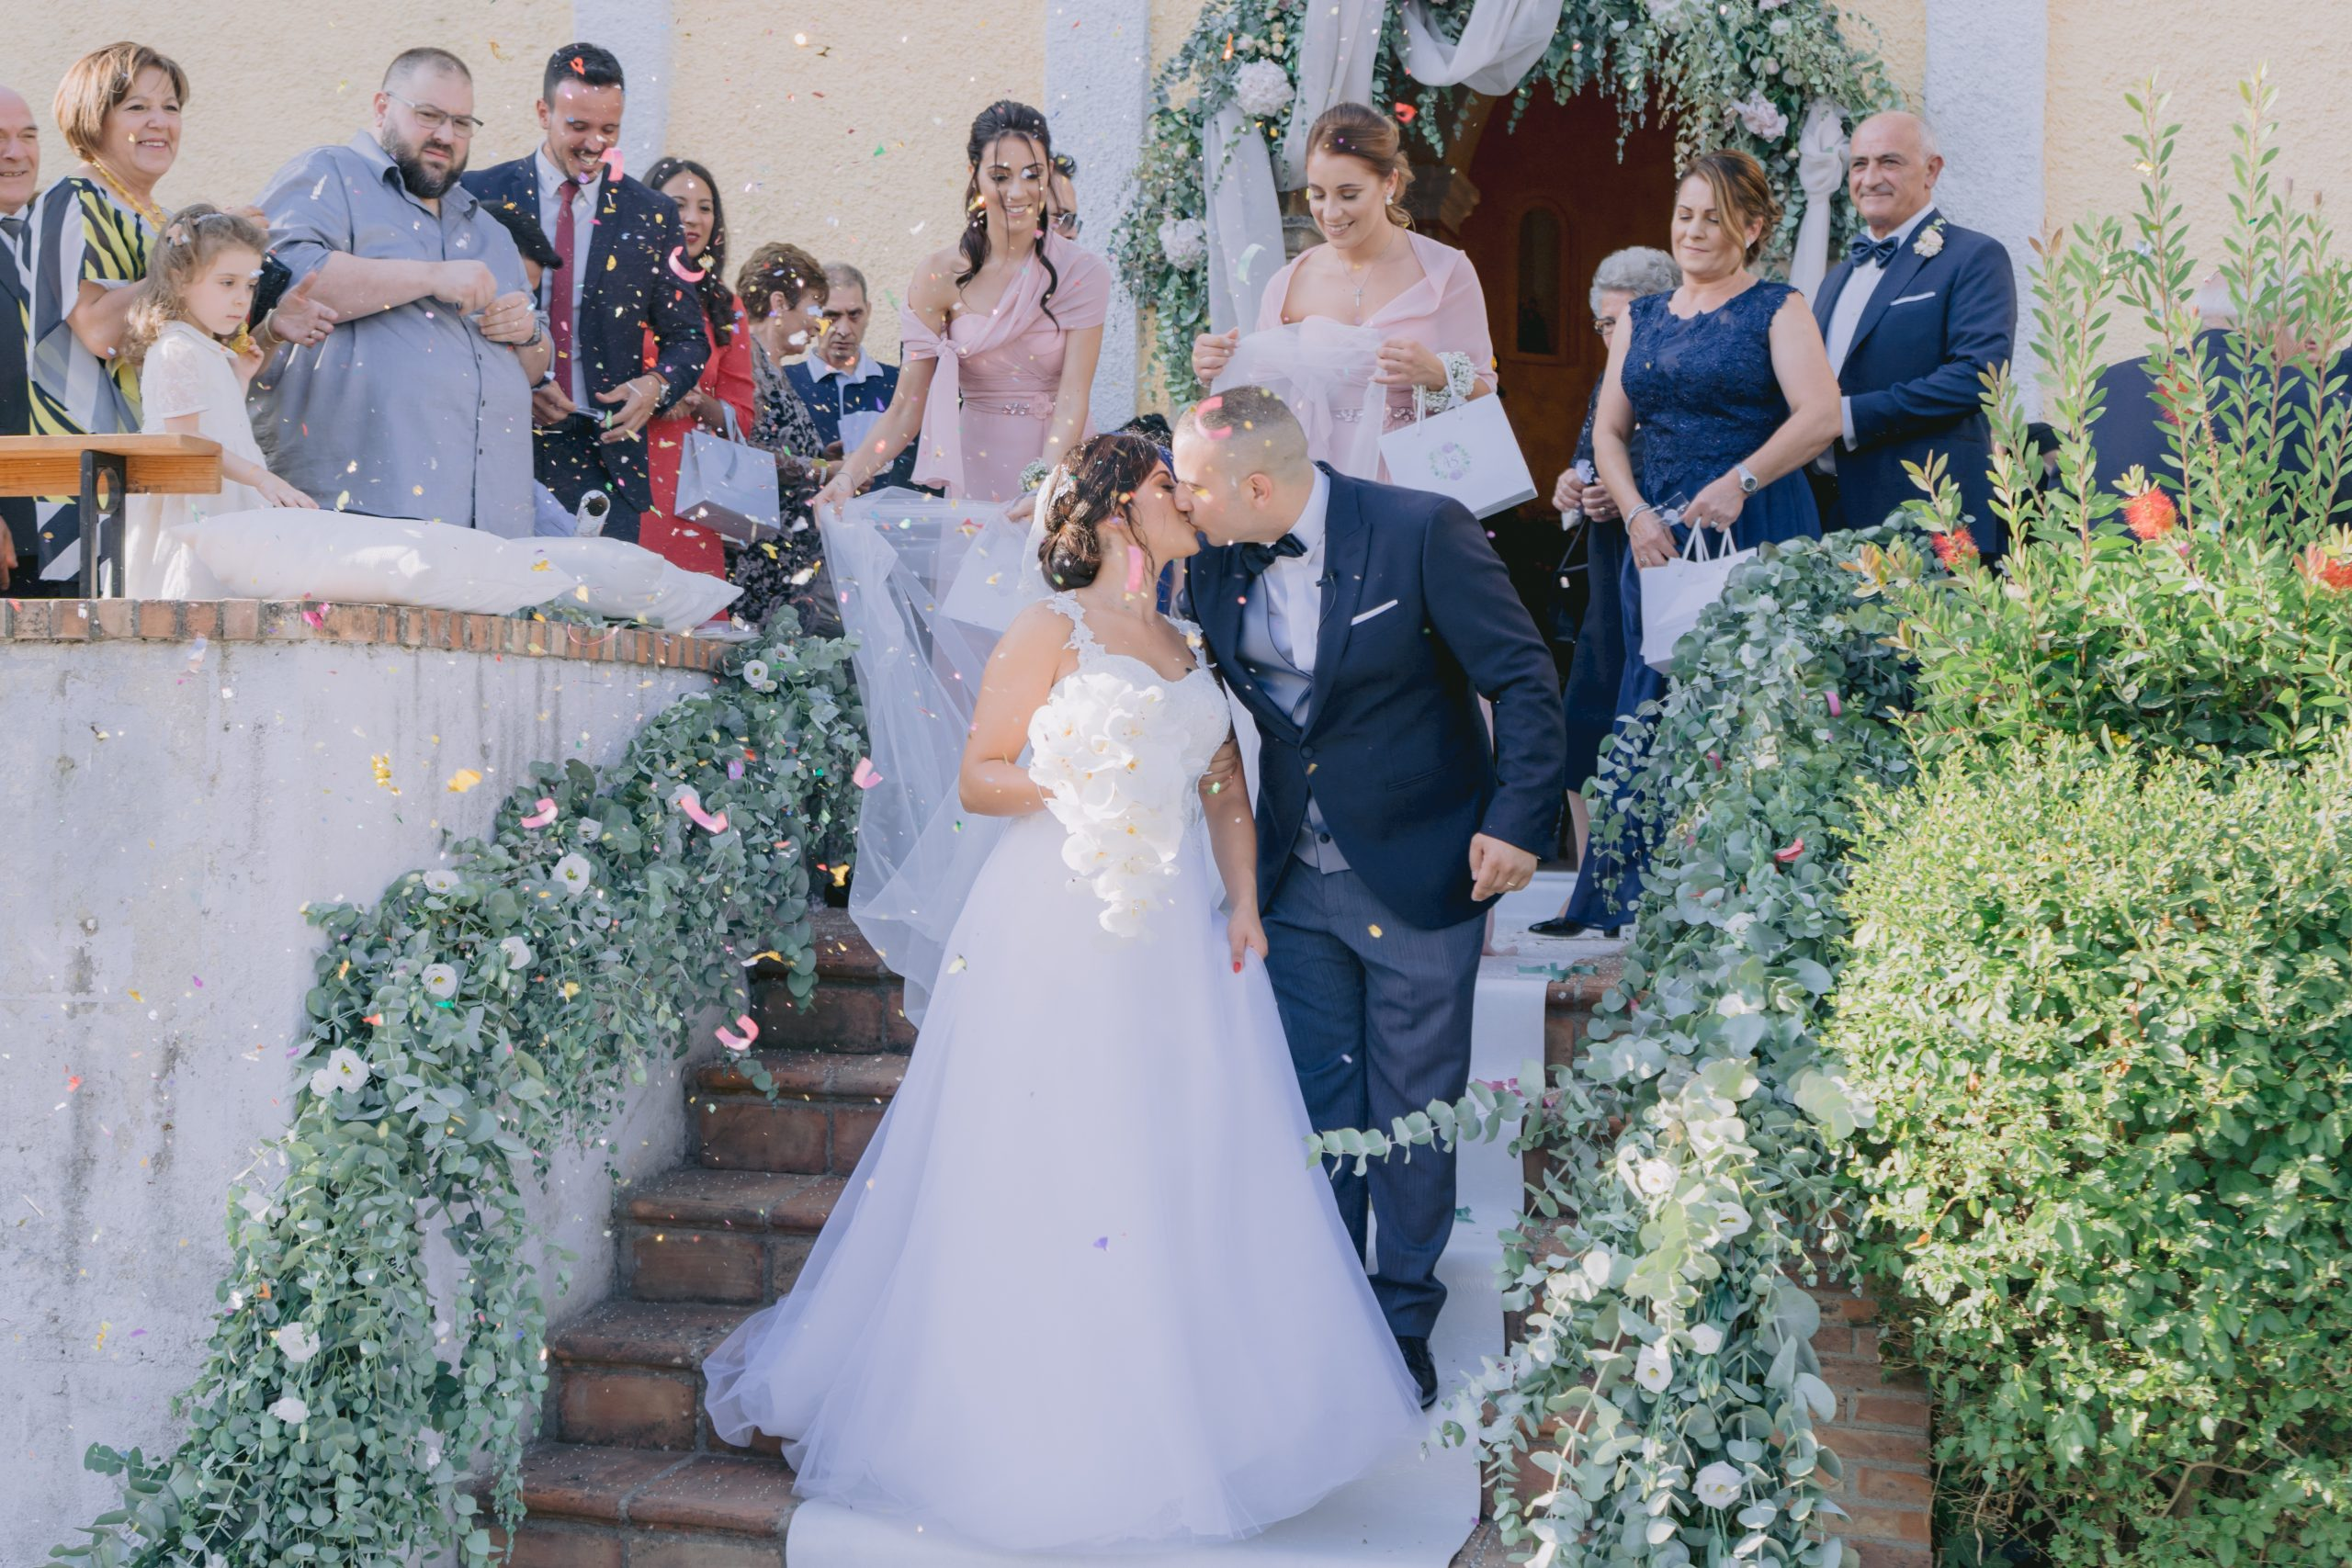 Perché affidarsi ad una Wedding Planner?